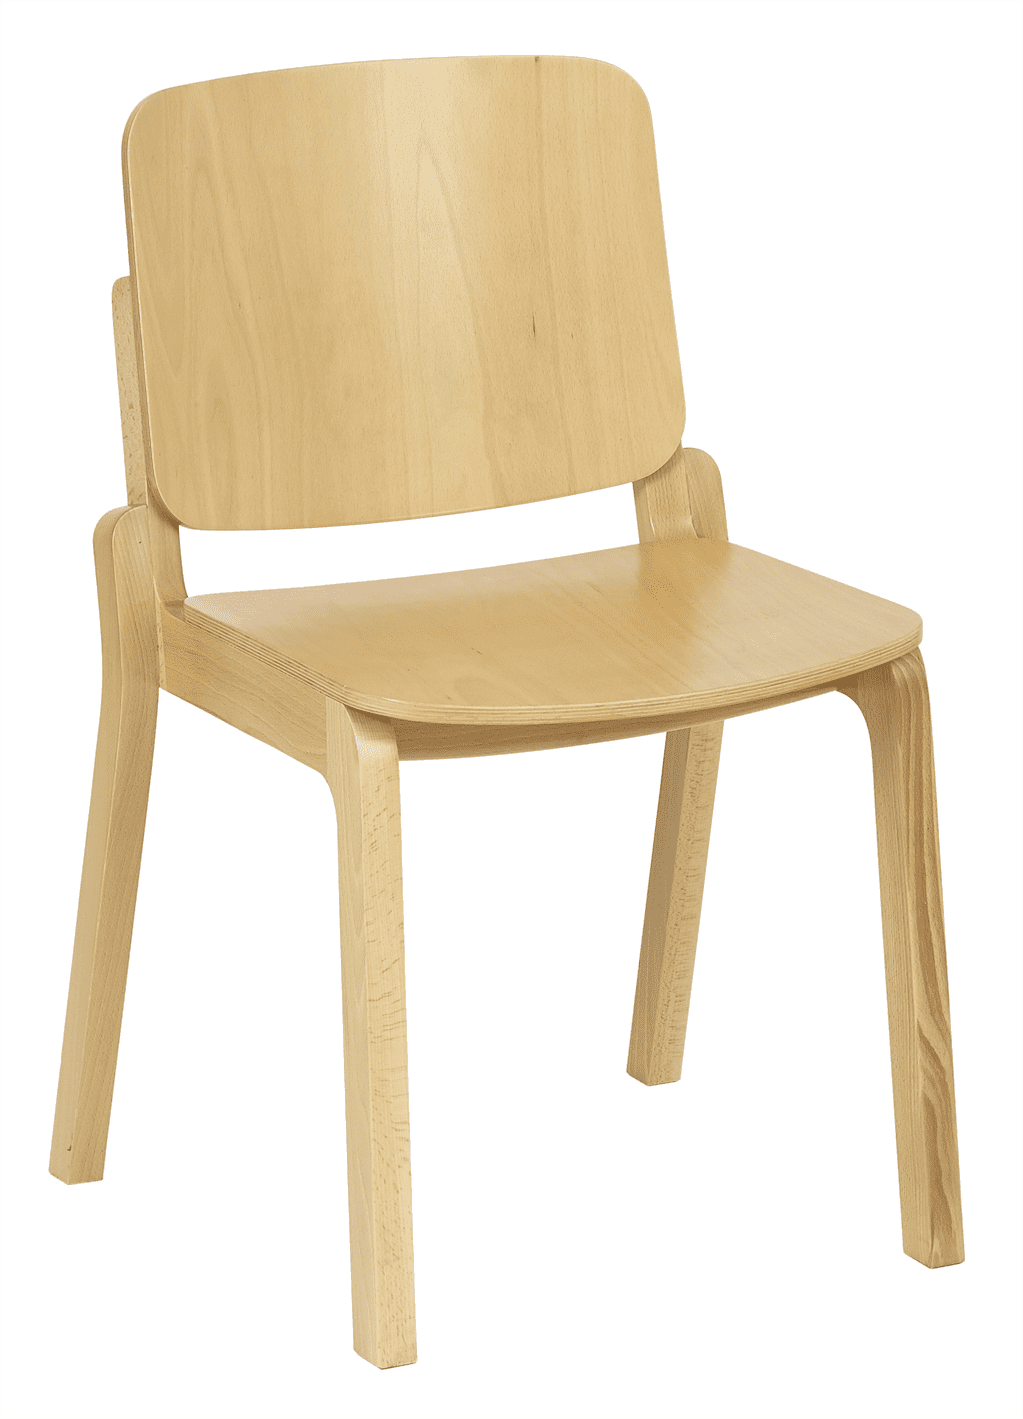 Croxley stacking side chair veneer seat raw